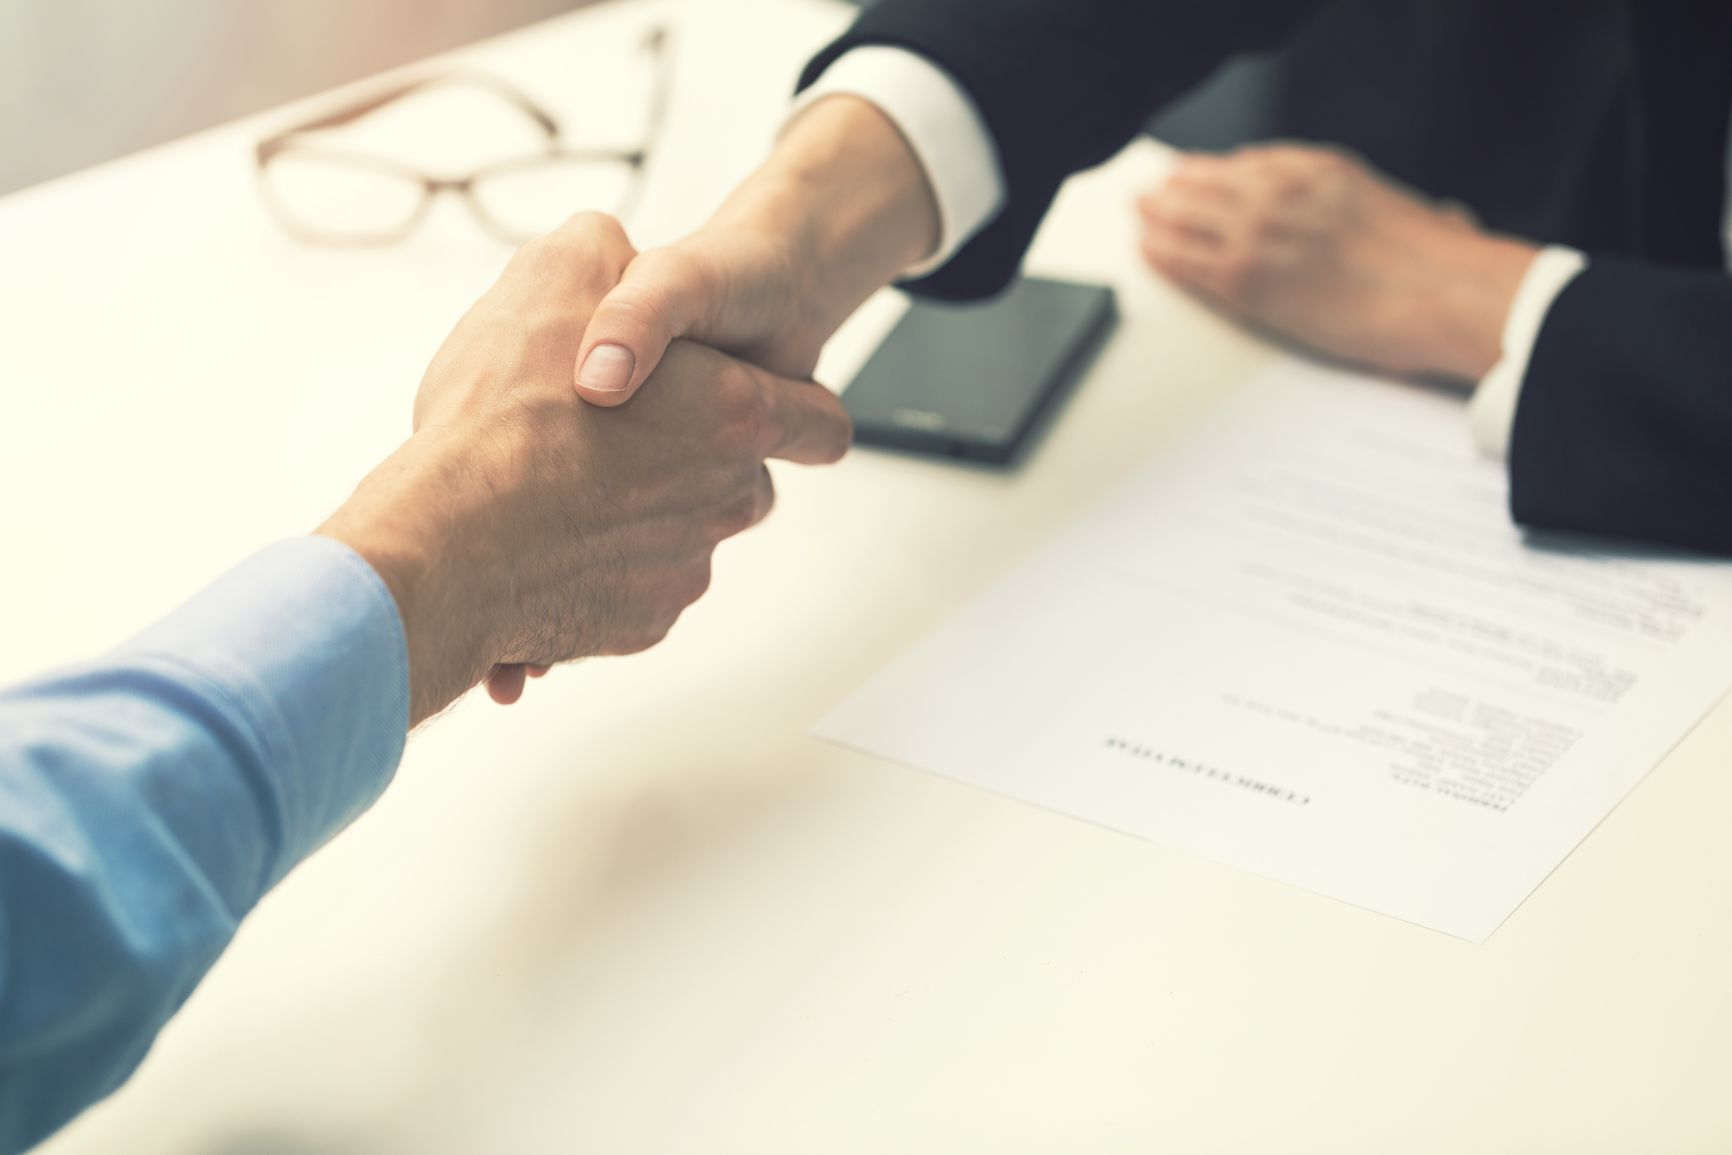 Why Work With a Recruitment Agency in Los Angeles